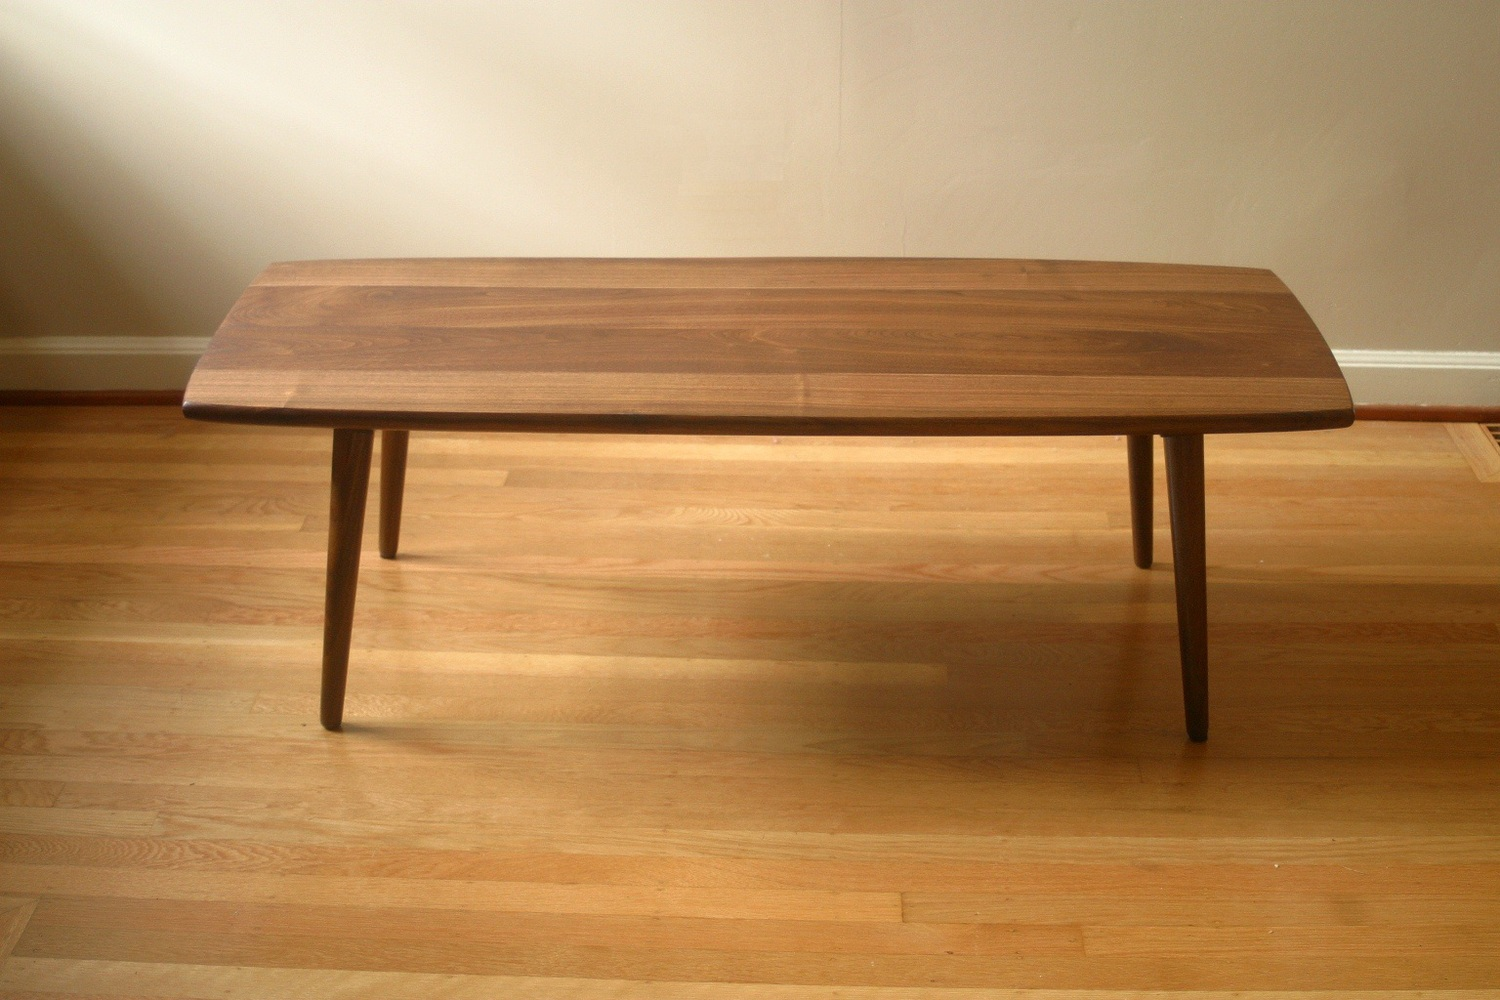 Coffee table in black walnut - Coffee Table In Black Walnut — The Flotsam Furniture Works